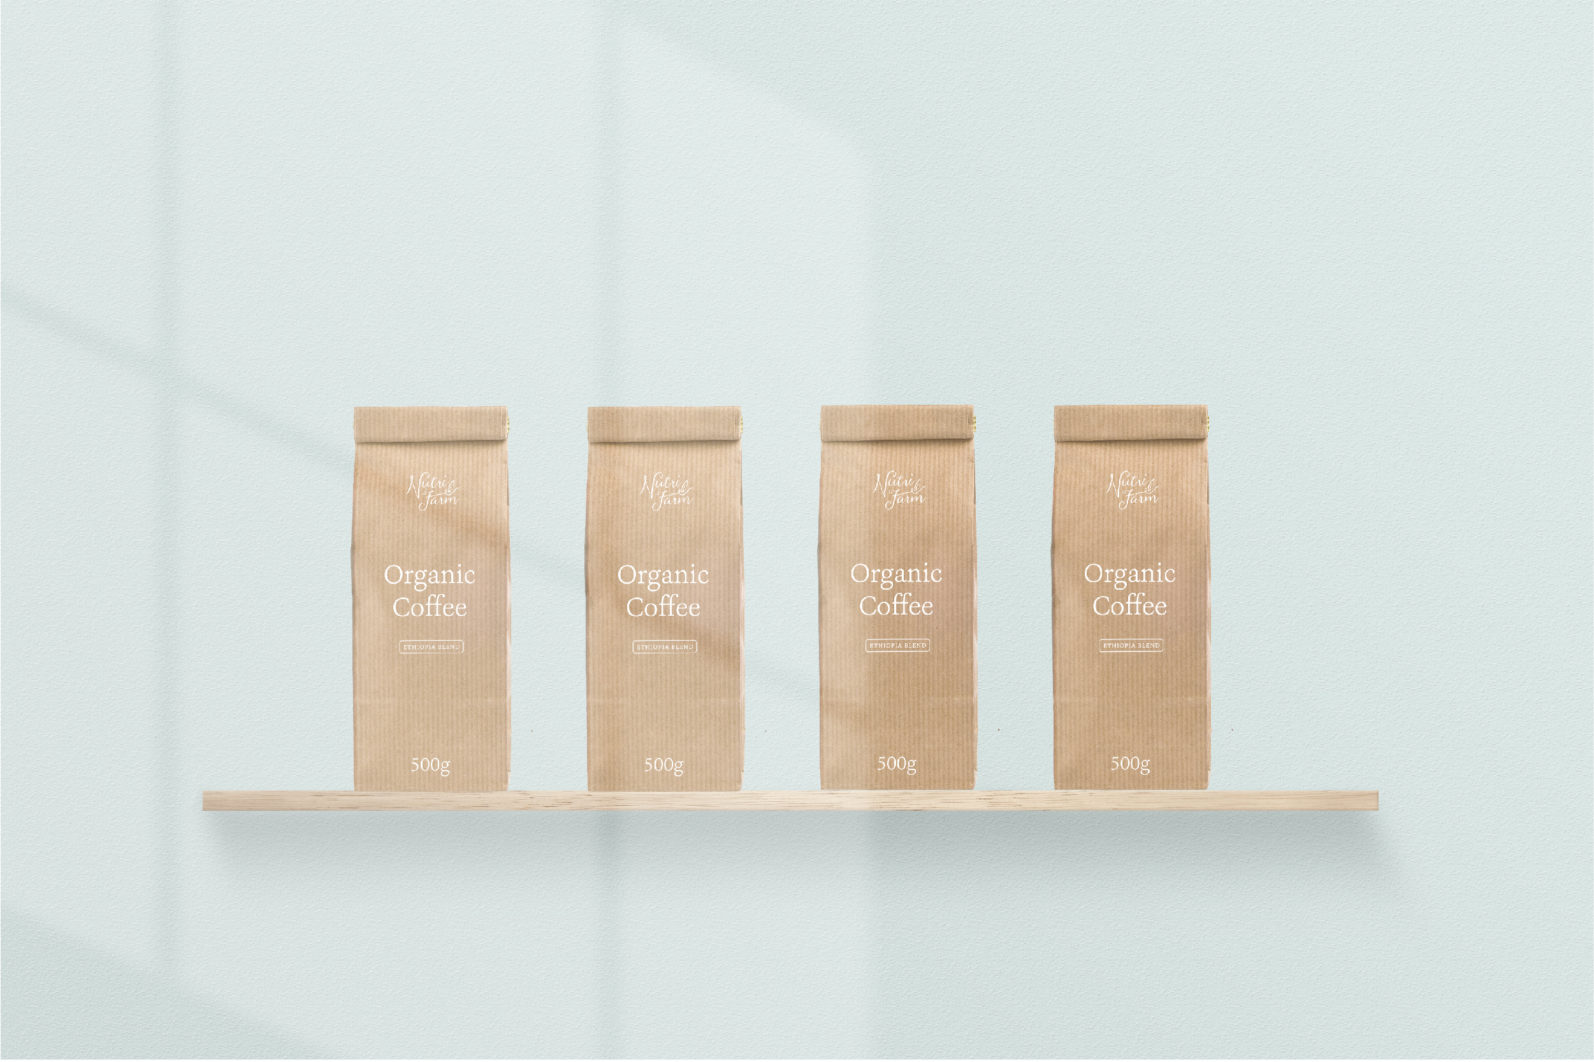 Package Mockup All Scenes - Min No.1 - Untitled 2 092 -